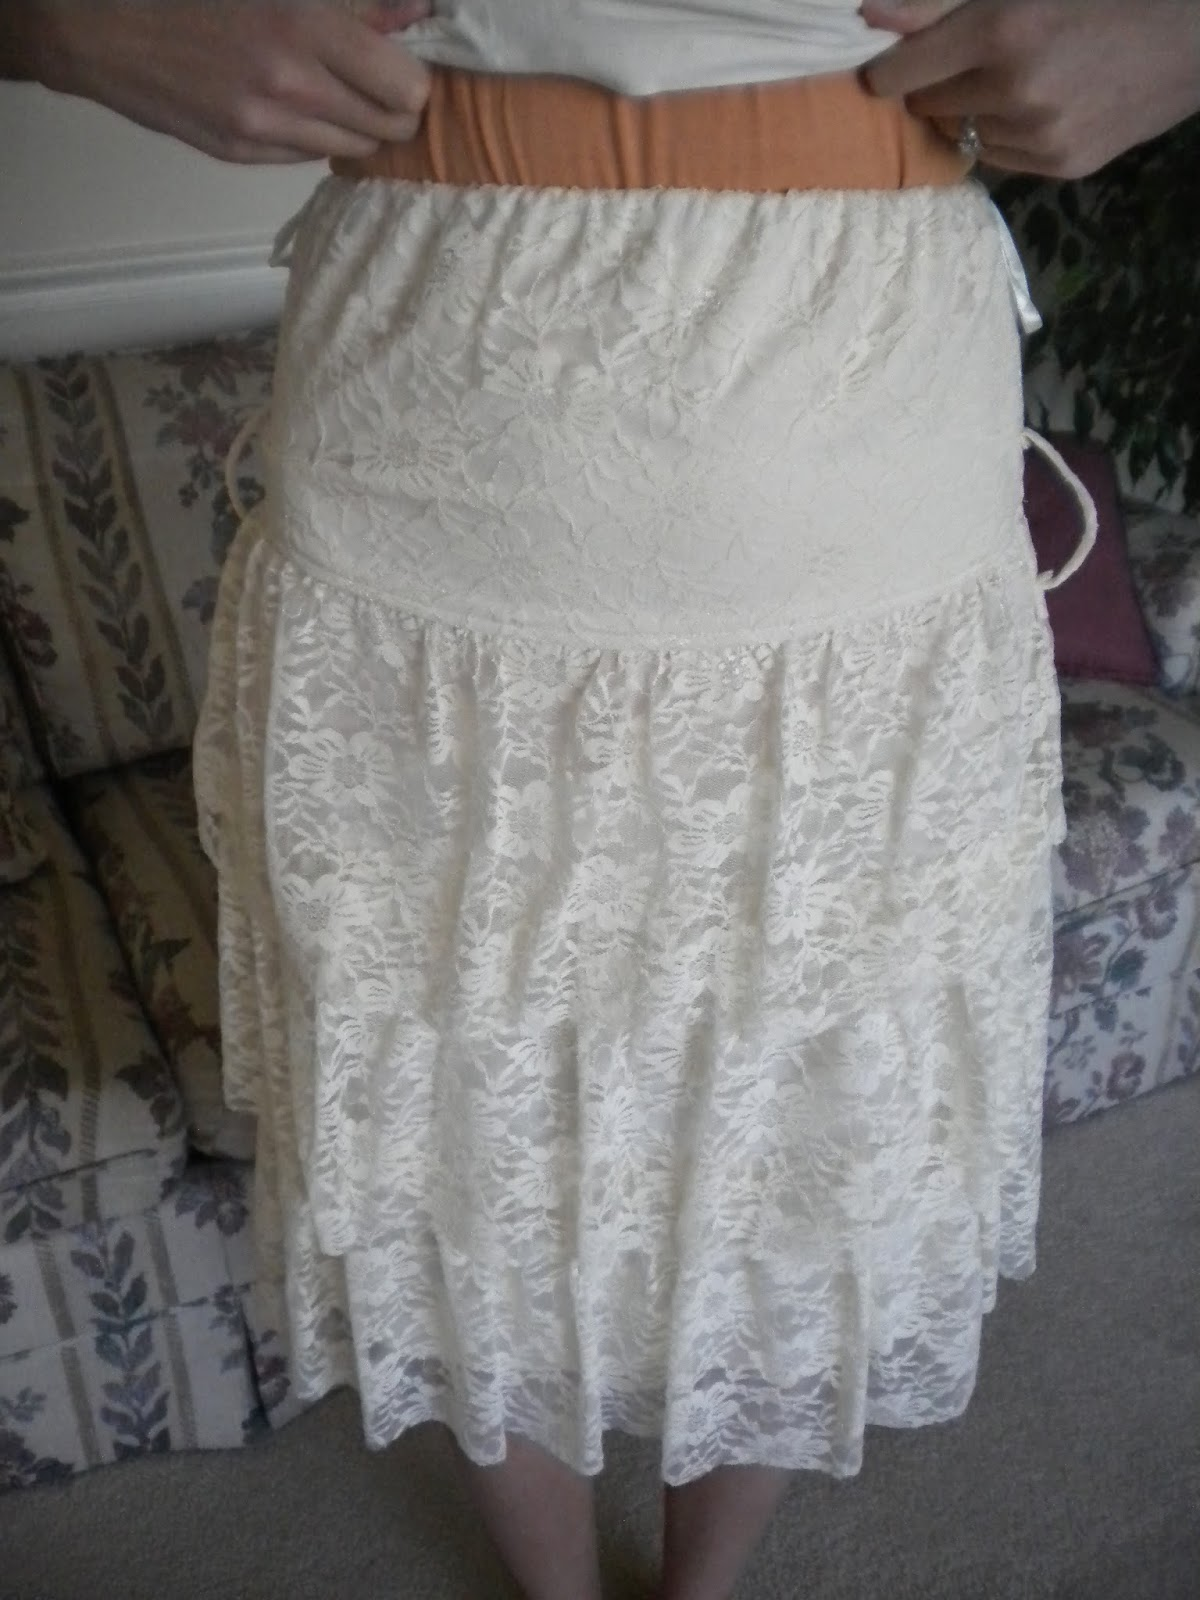 The dress how to see it both ways - It Can Be Worn Tucked Down Or Kept Up Both Ways Are Comfortable And As You Can See From The Picture Below It Works Great As A Skirt